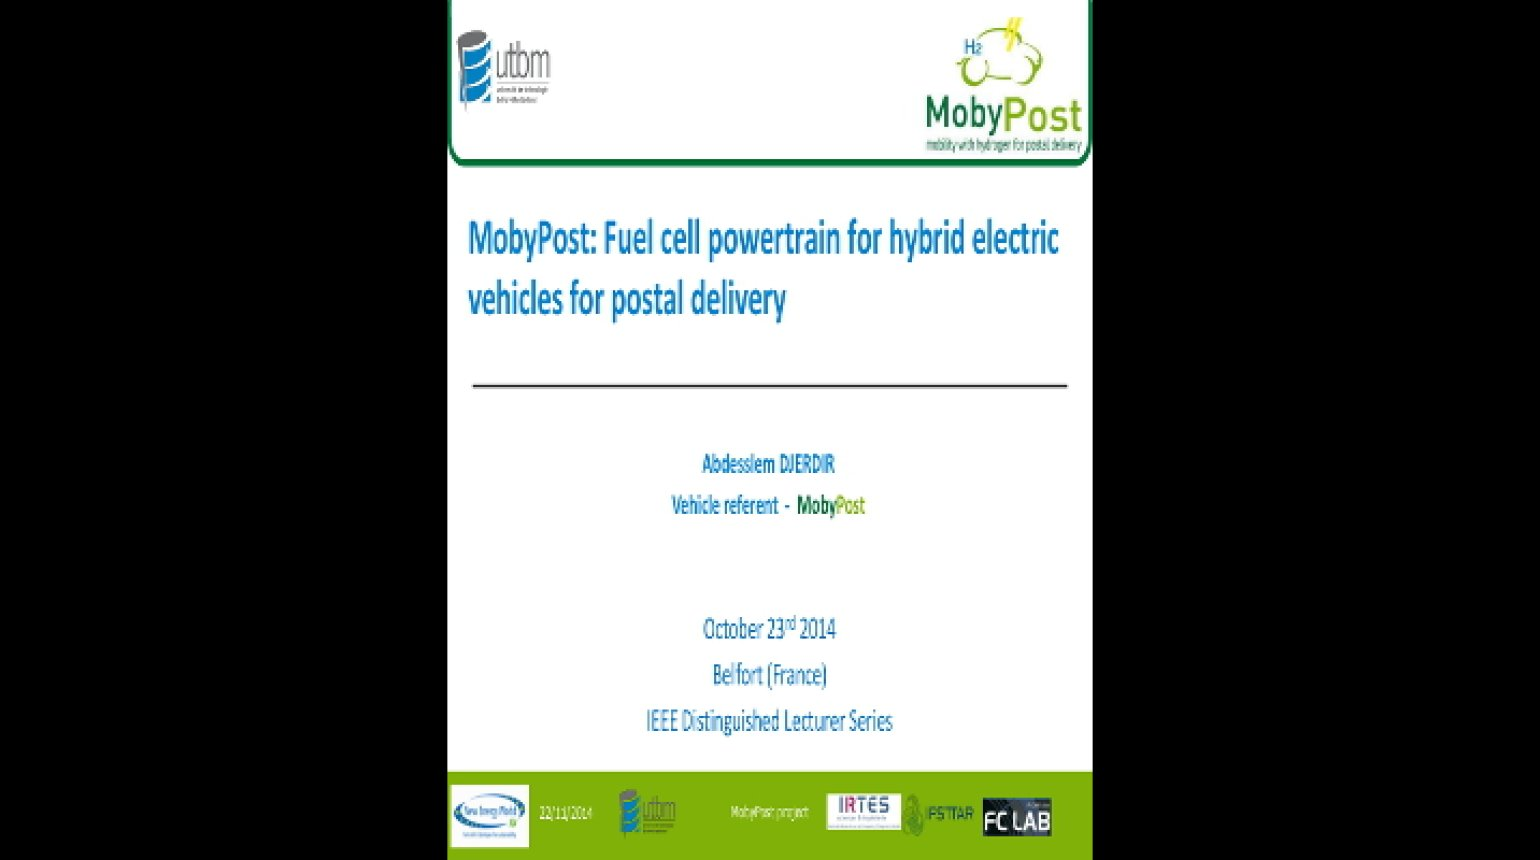 Video - Fuel Cell Powertrain for Hybrid Electric Vehicles for Postal Delivery